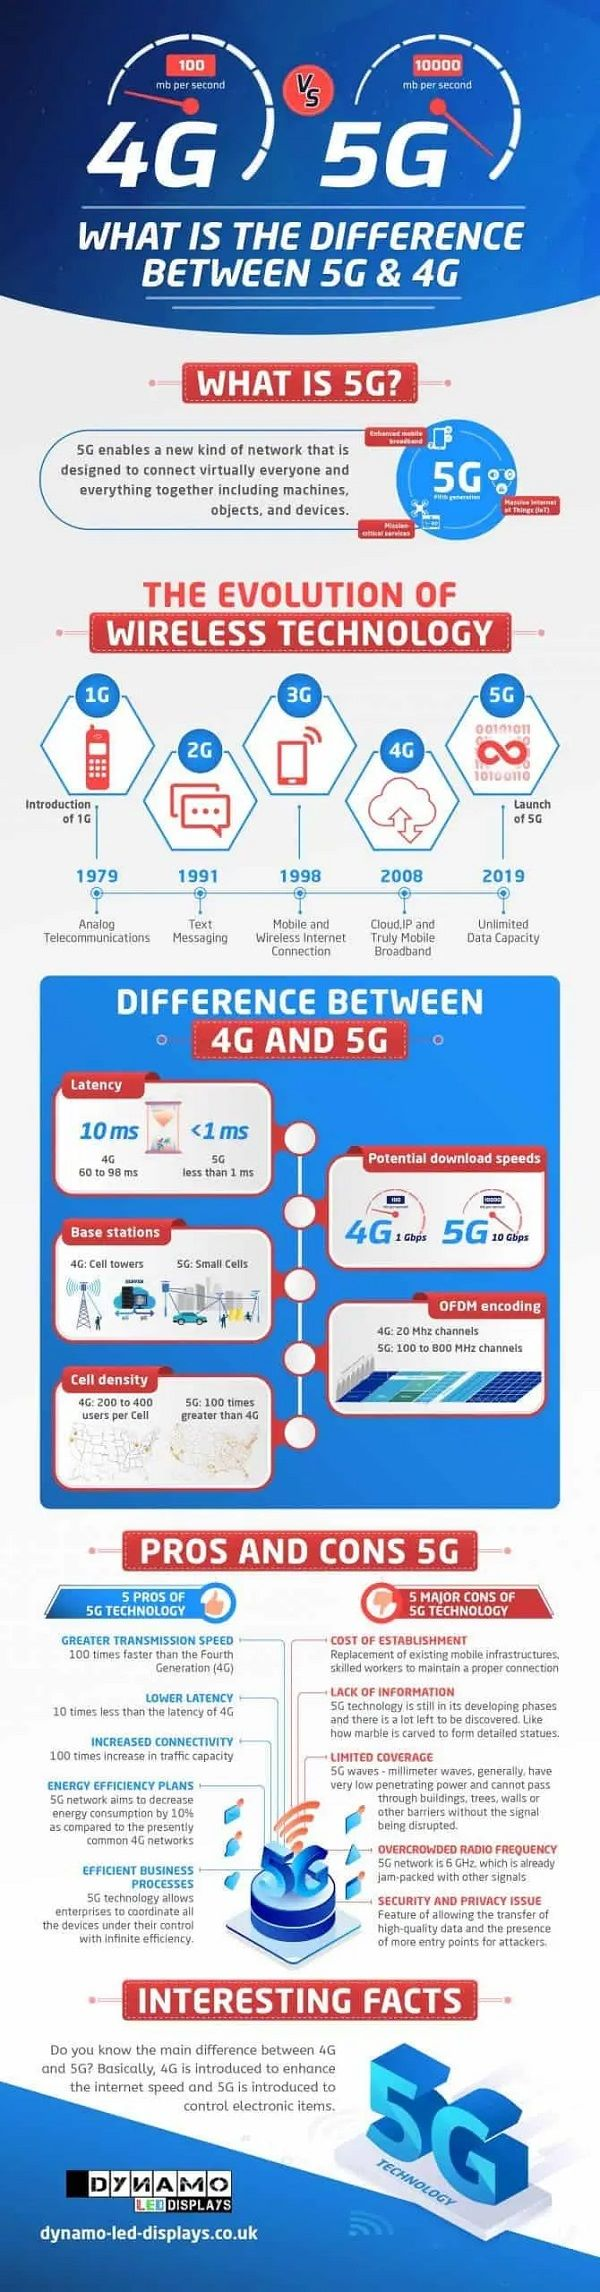 4G vs 5G - How Is The Fifth-Gen Network Standard Better (2)